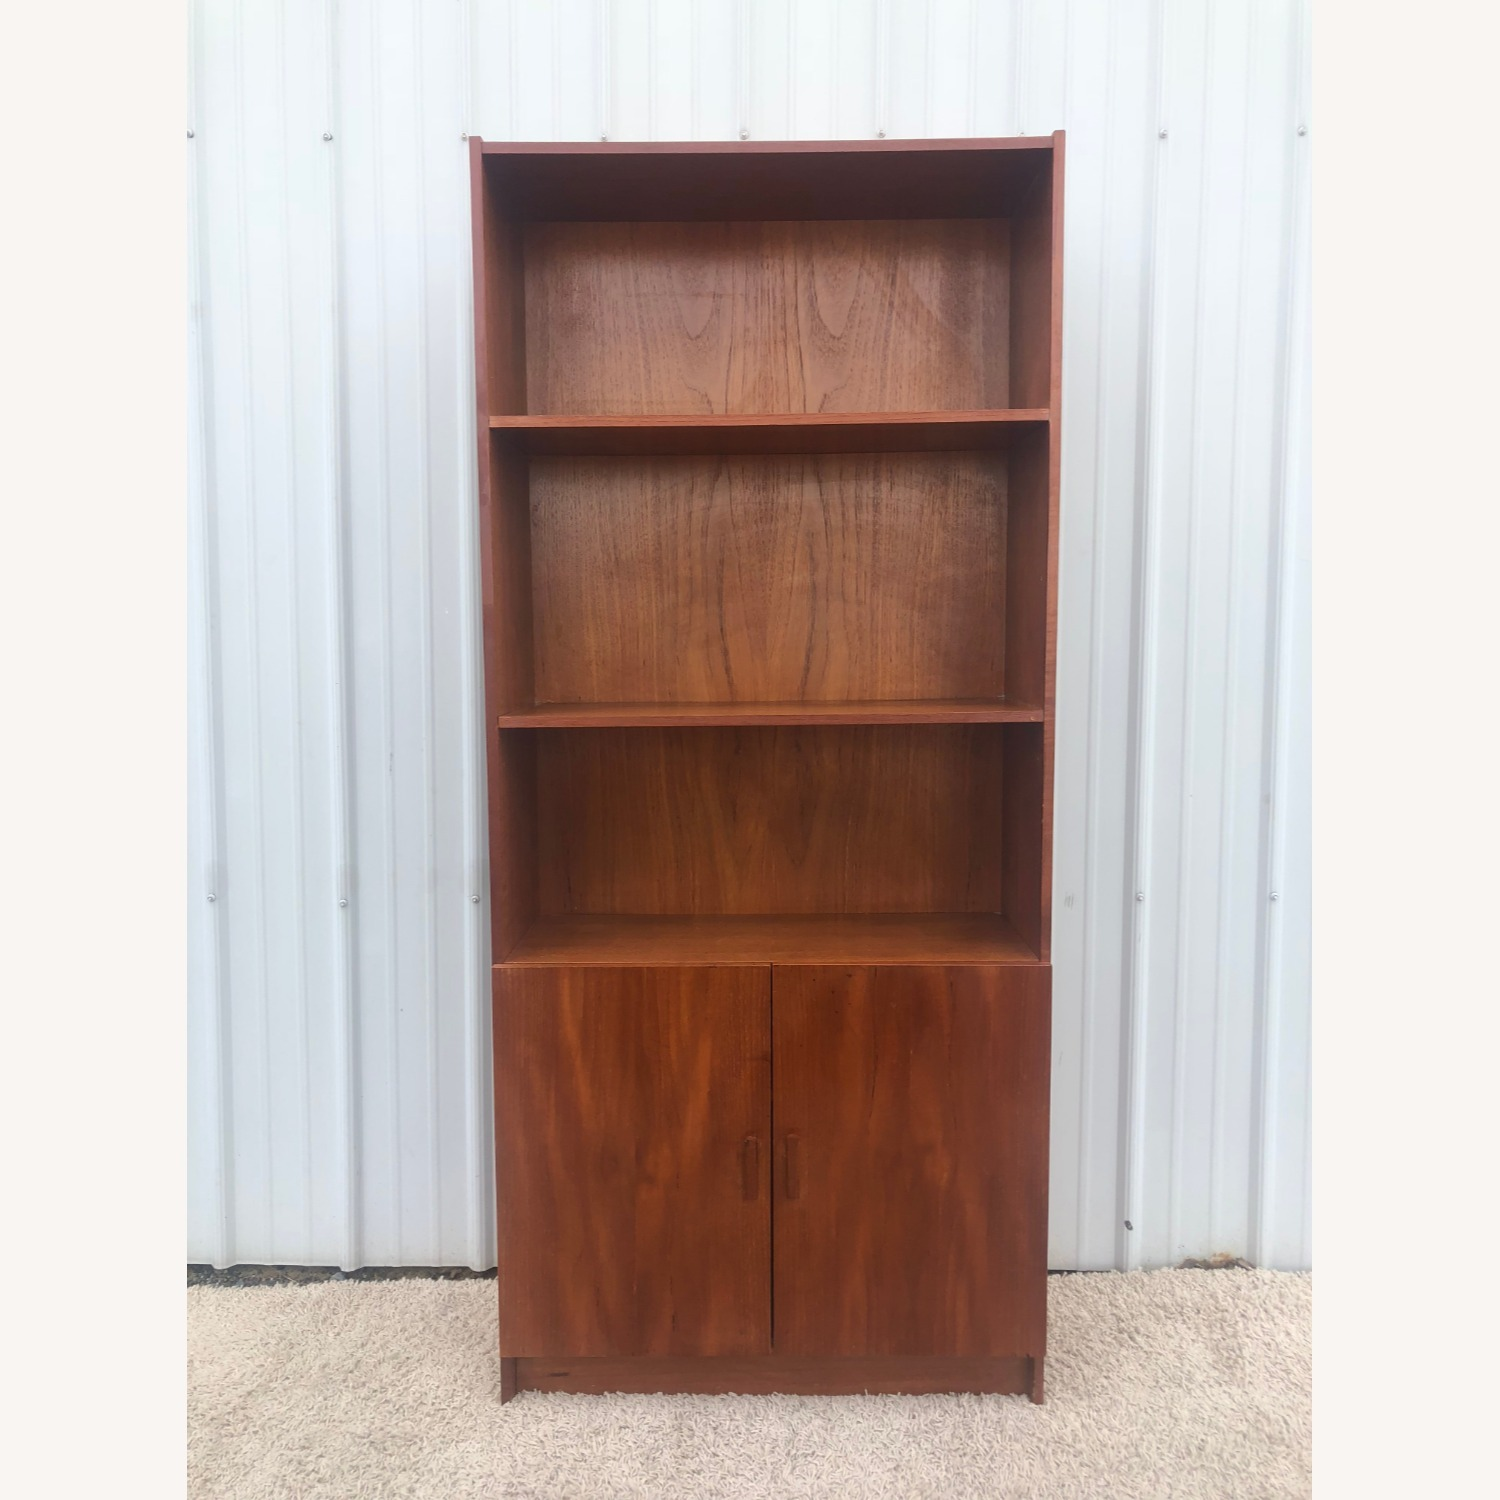 Danish Modern Teak Shelving with Cabinet - image-9